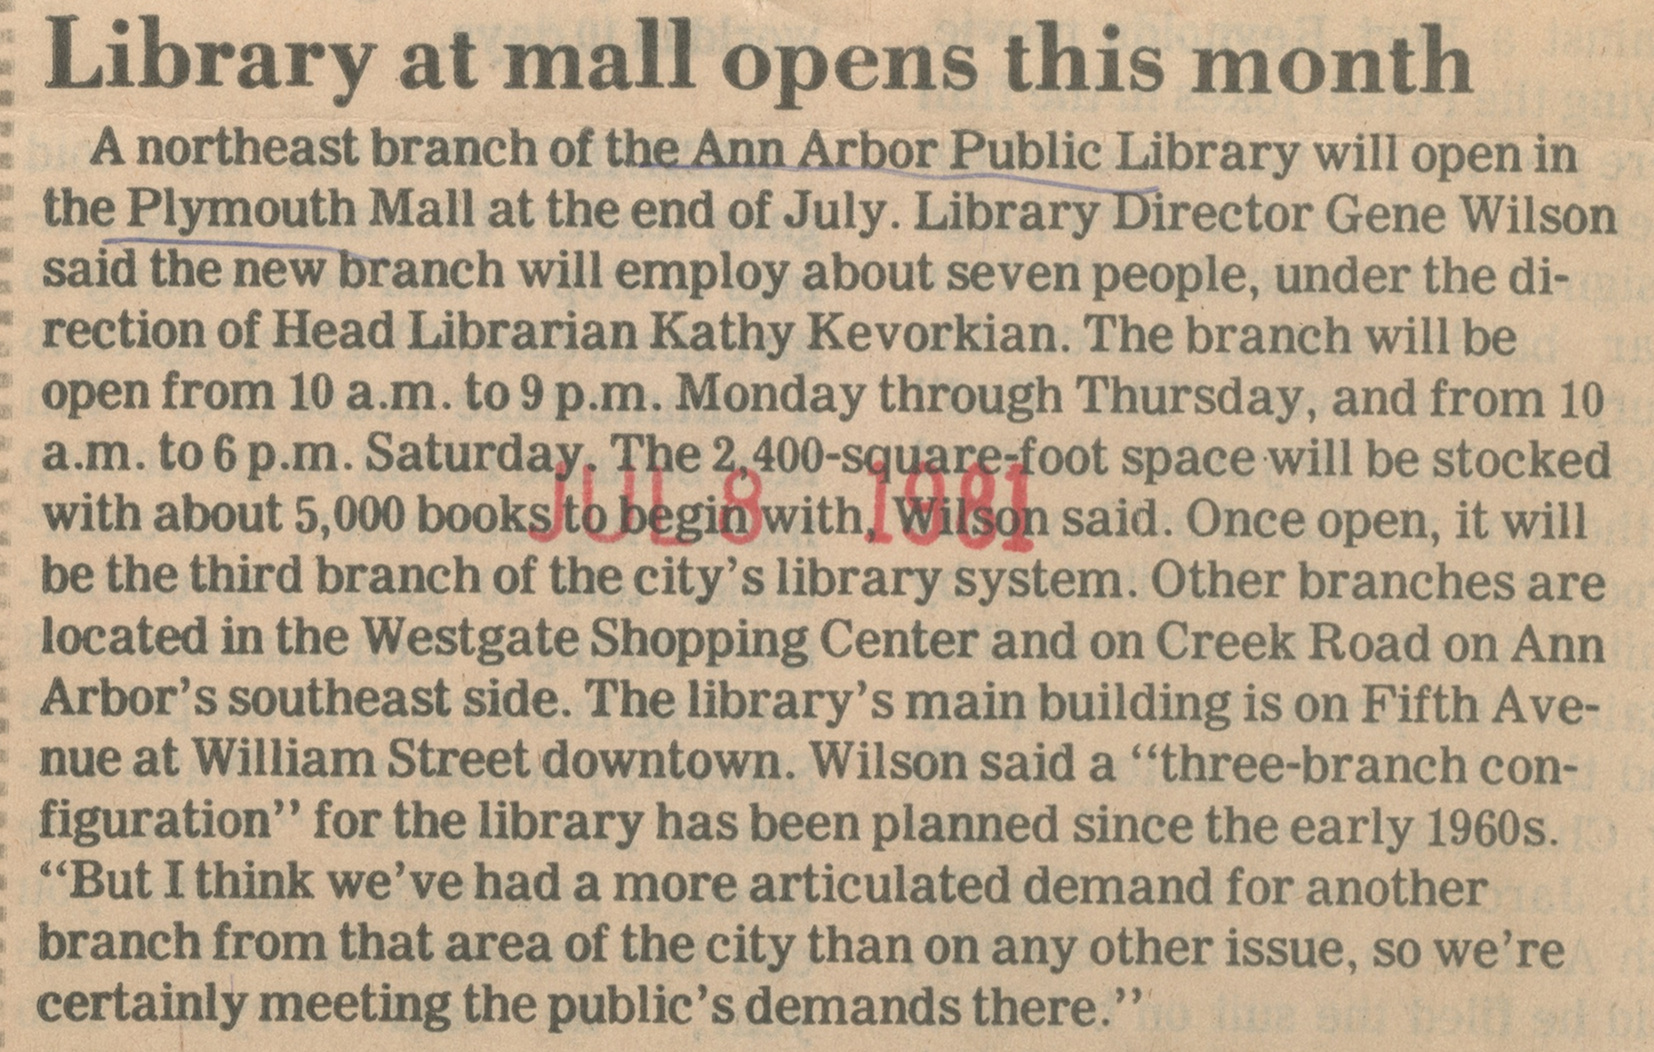 Library At Mall Opens This Month image